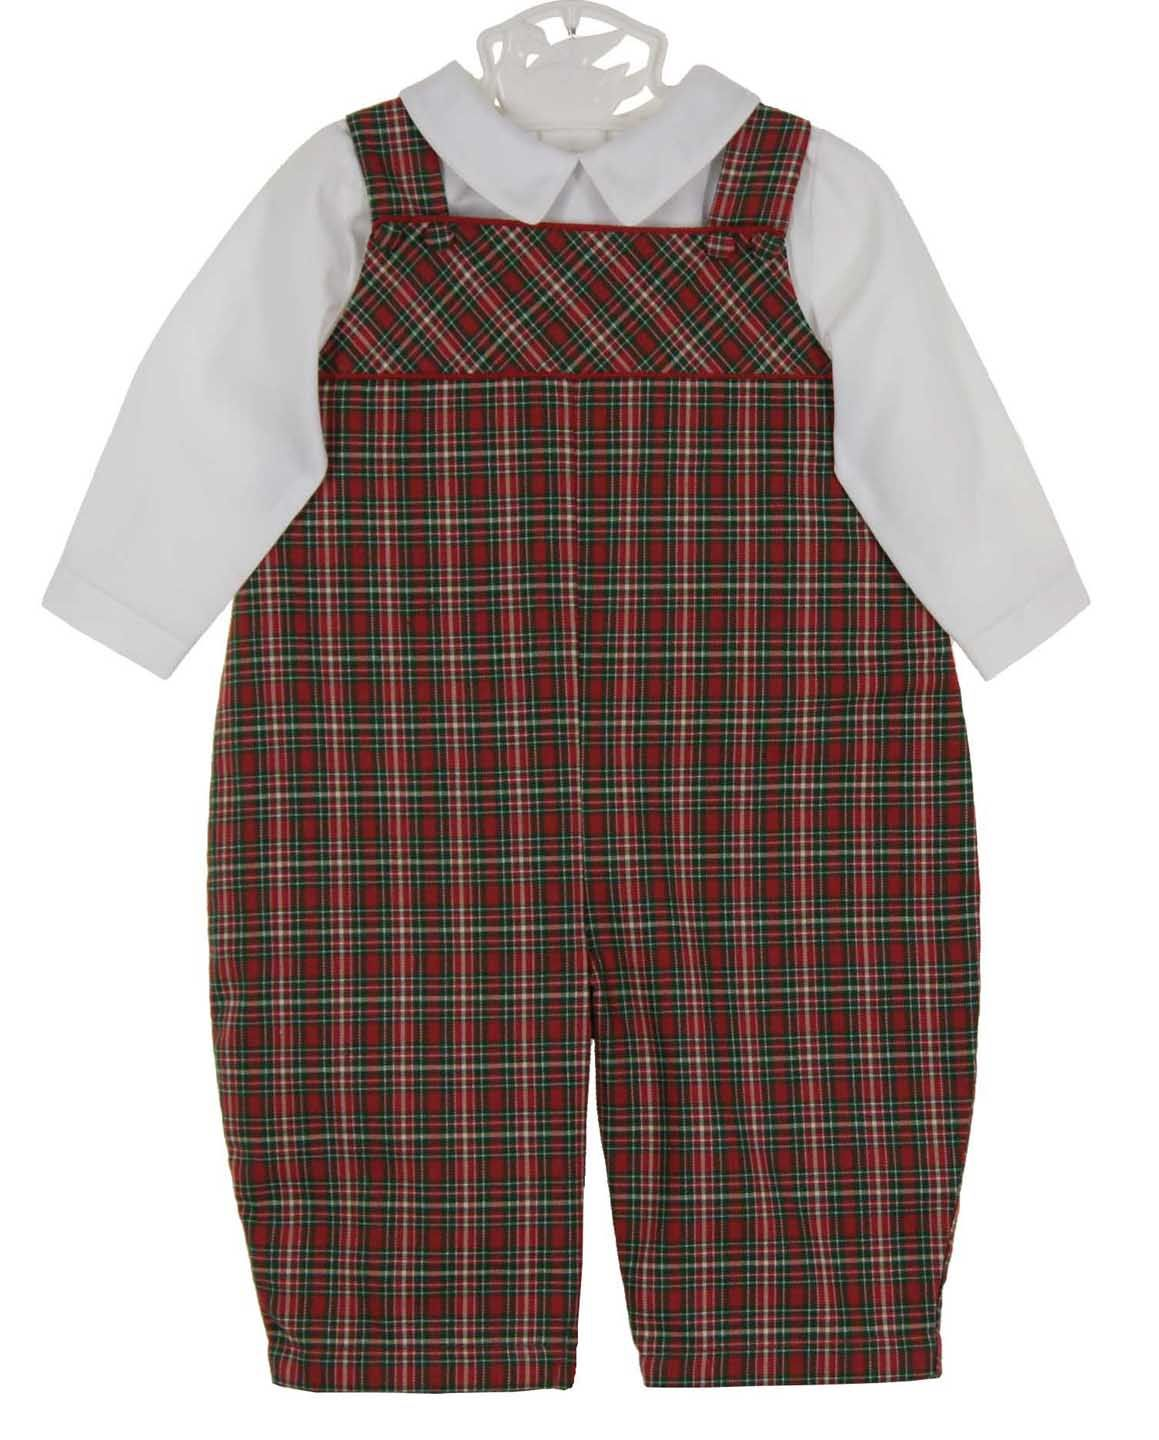 6b1665219a31 NEW Petit Ami Red and Green Plaid Longall with White Shirt $40.00 ...